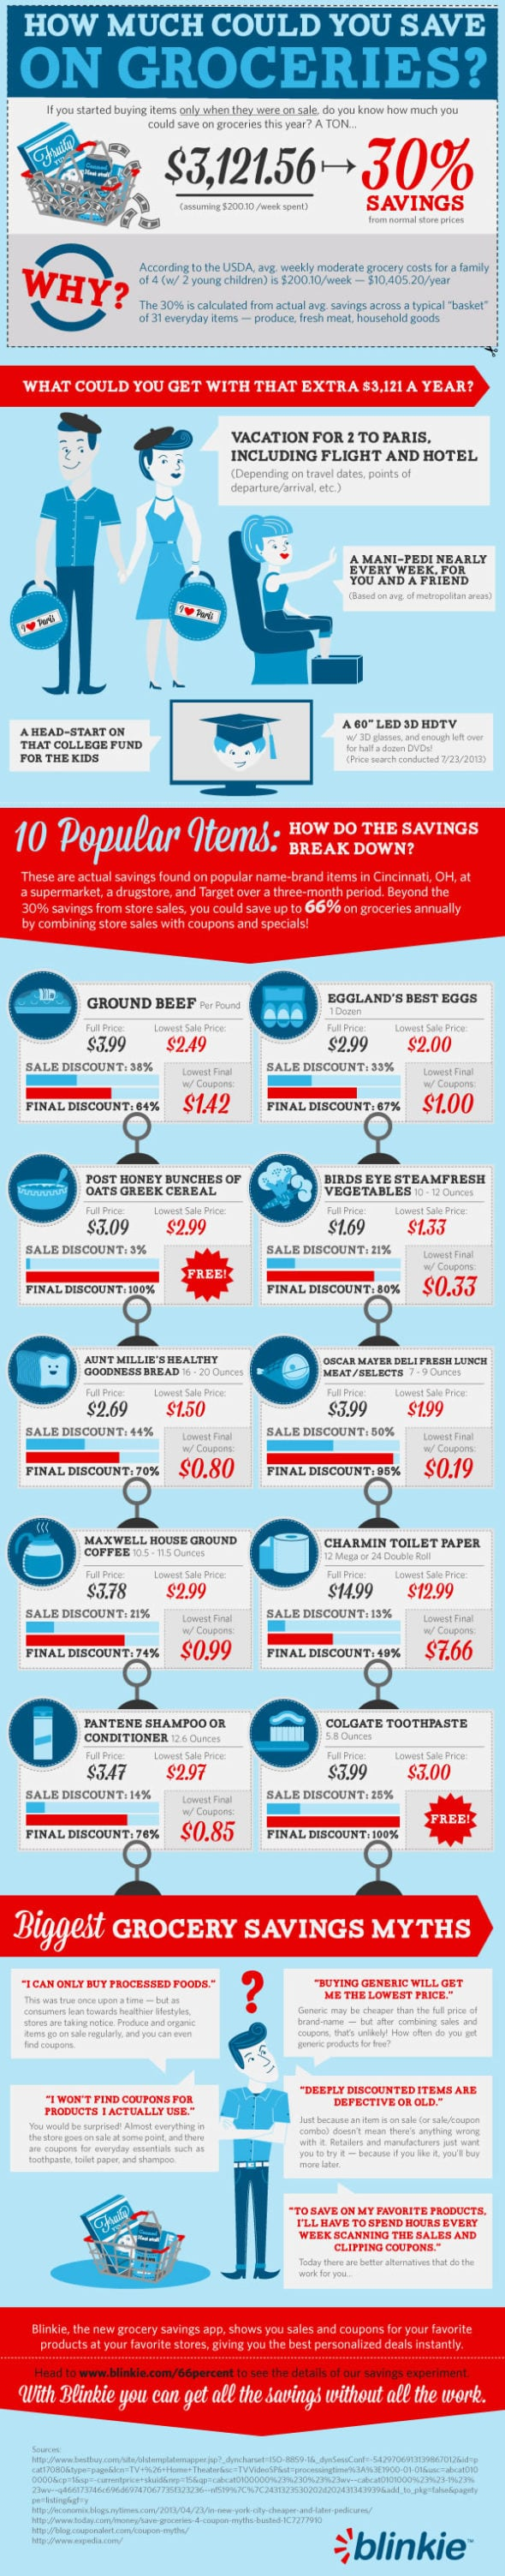 Infographic: How Much Could You Save on Groceries?